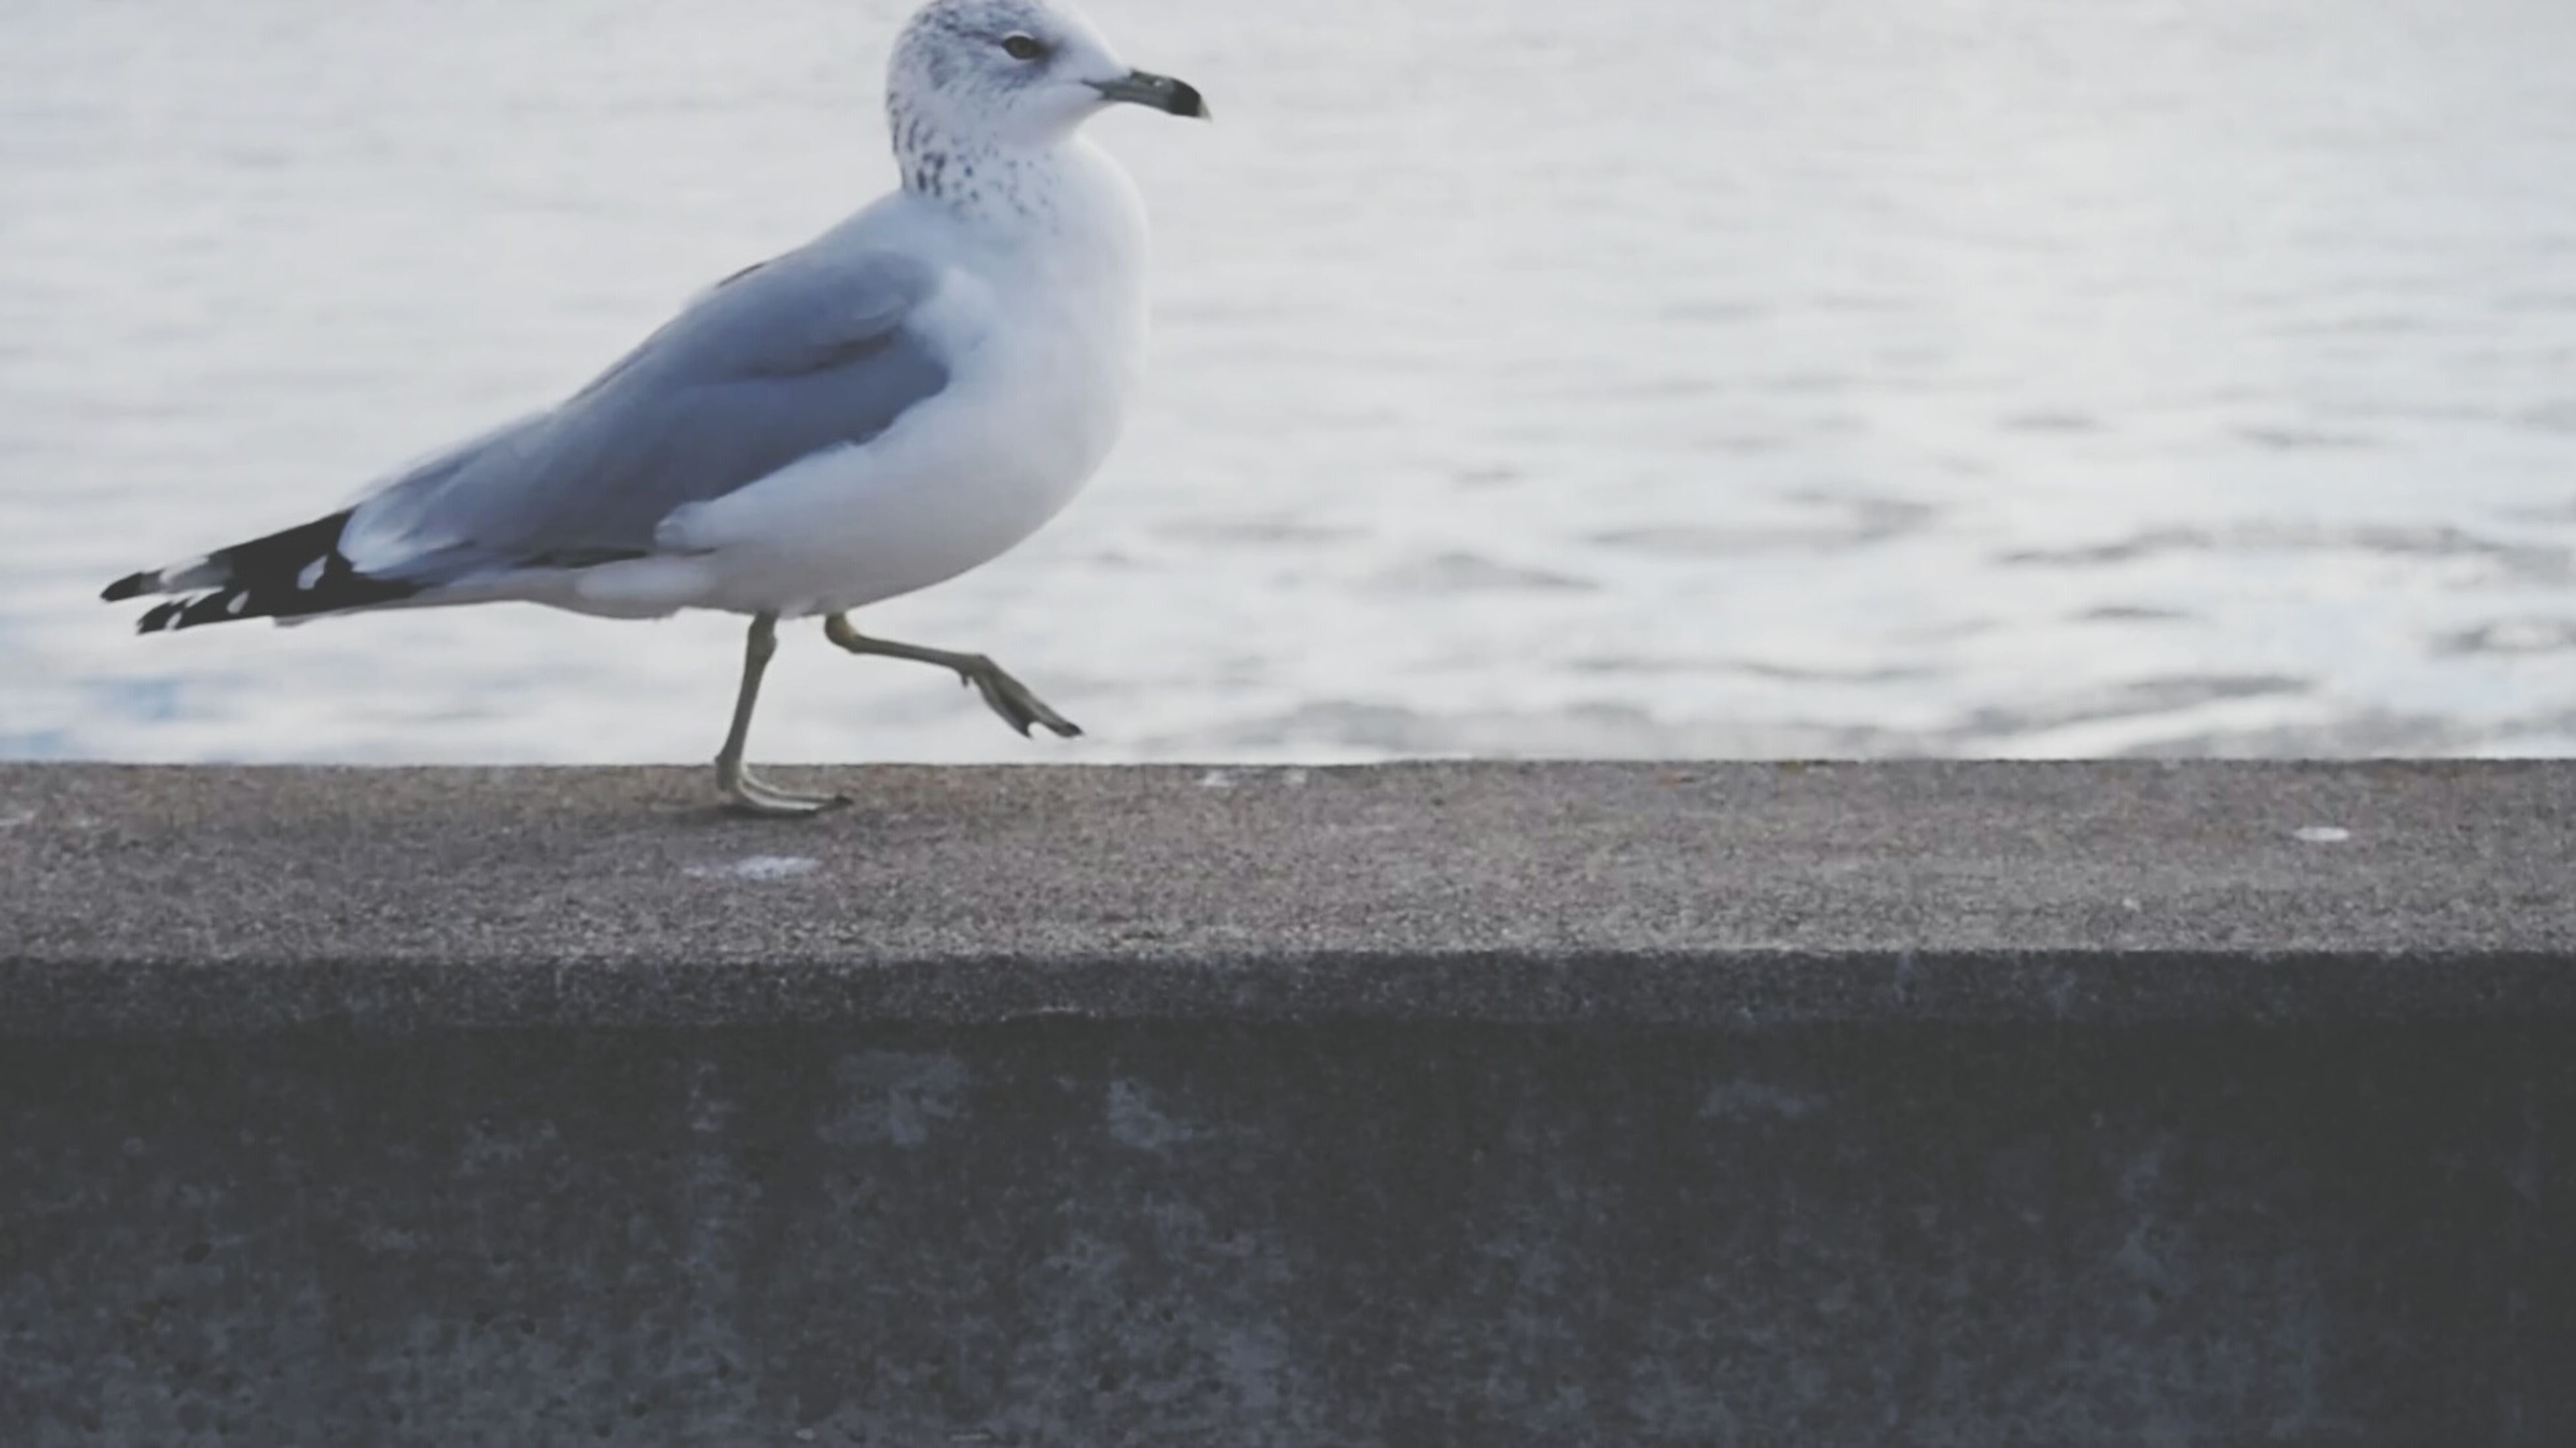 bird, animal themes, animals in the wild, seagull, wildlife, one animal, water, sea, perching, full length, nature, side view, spread wings, day, outdoors, flying, focus on foreground, two animals, no people, white color